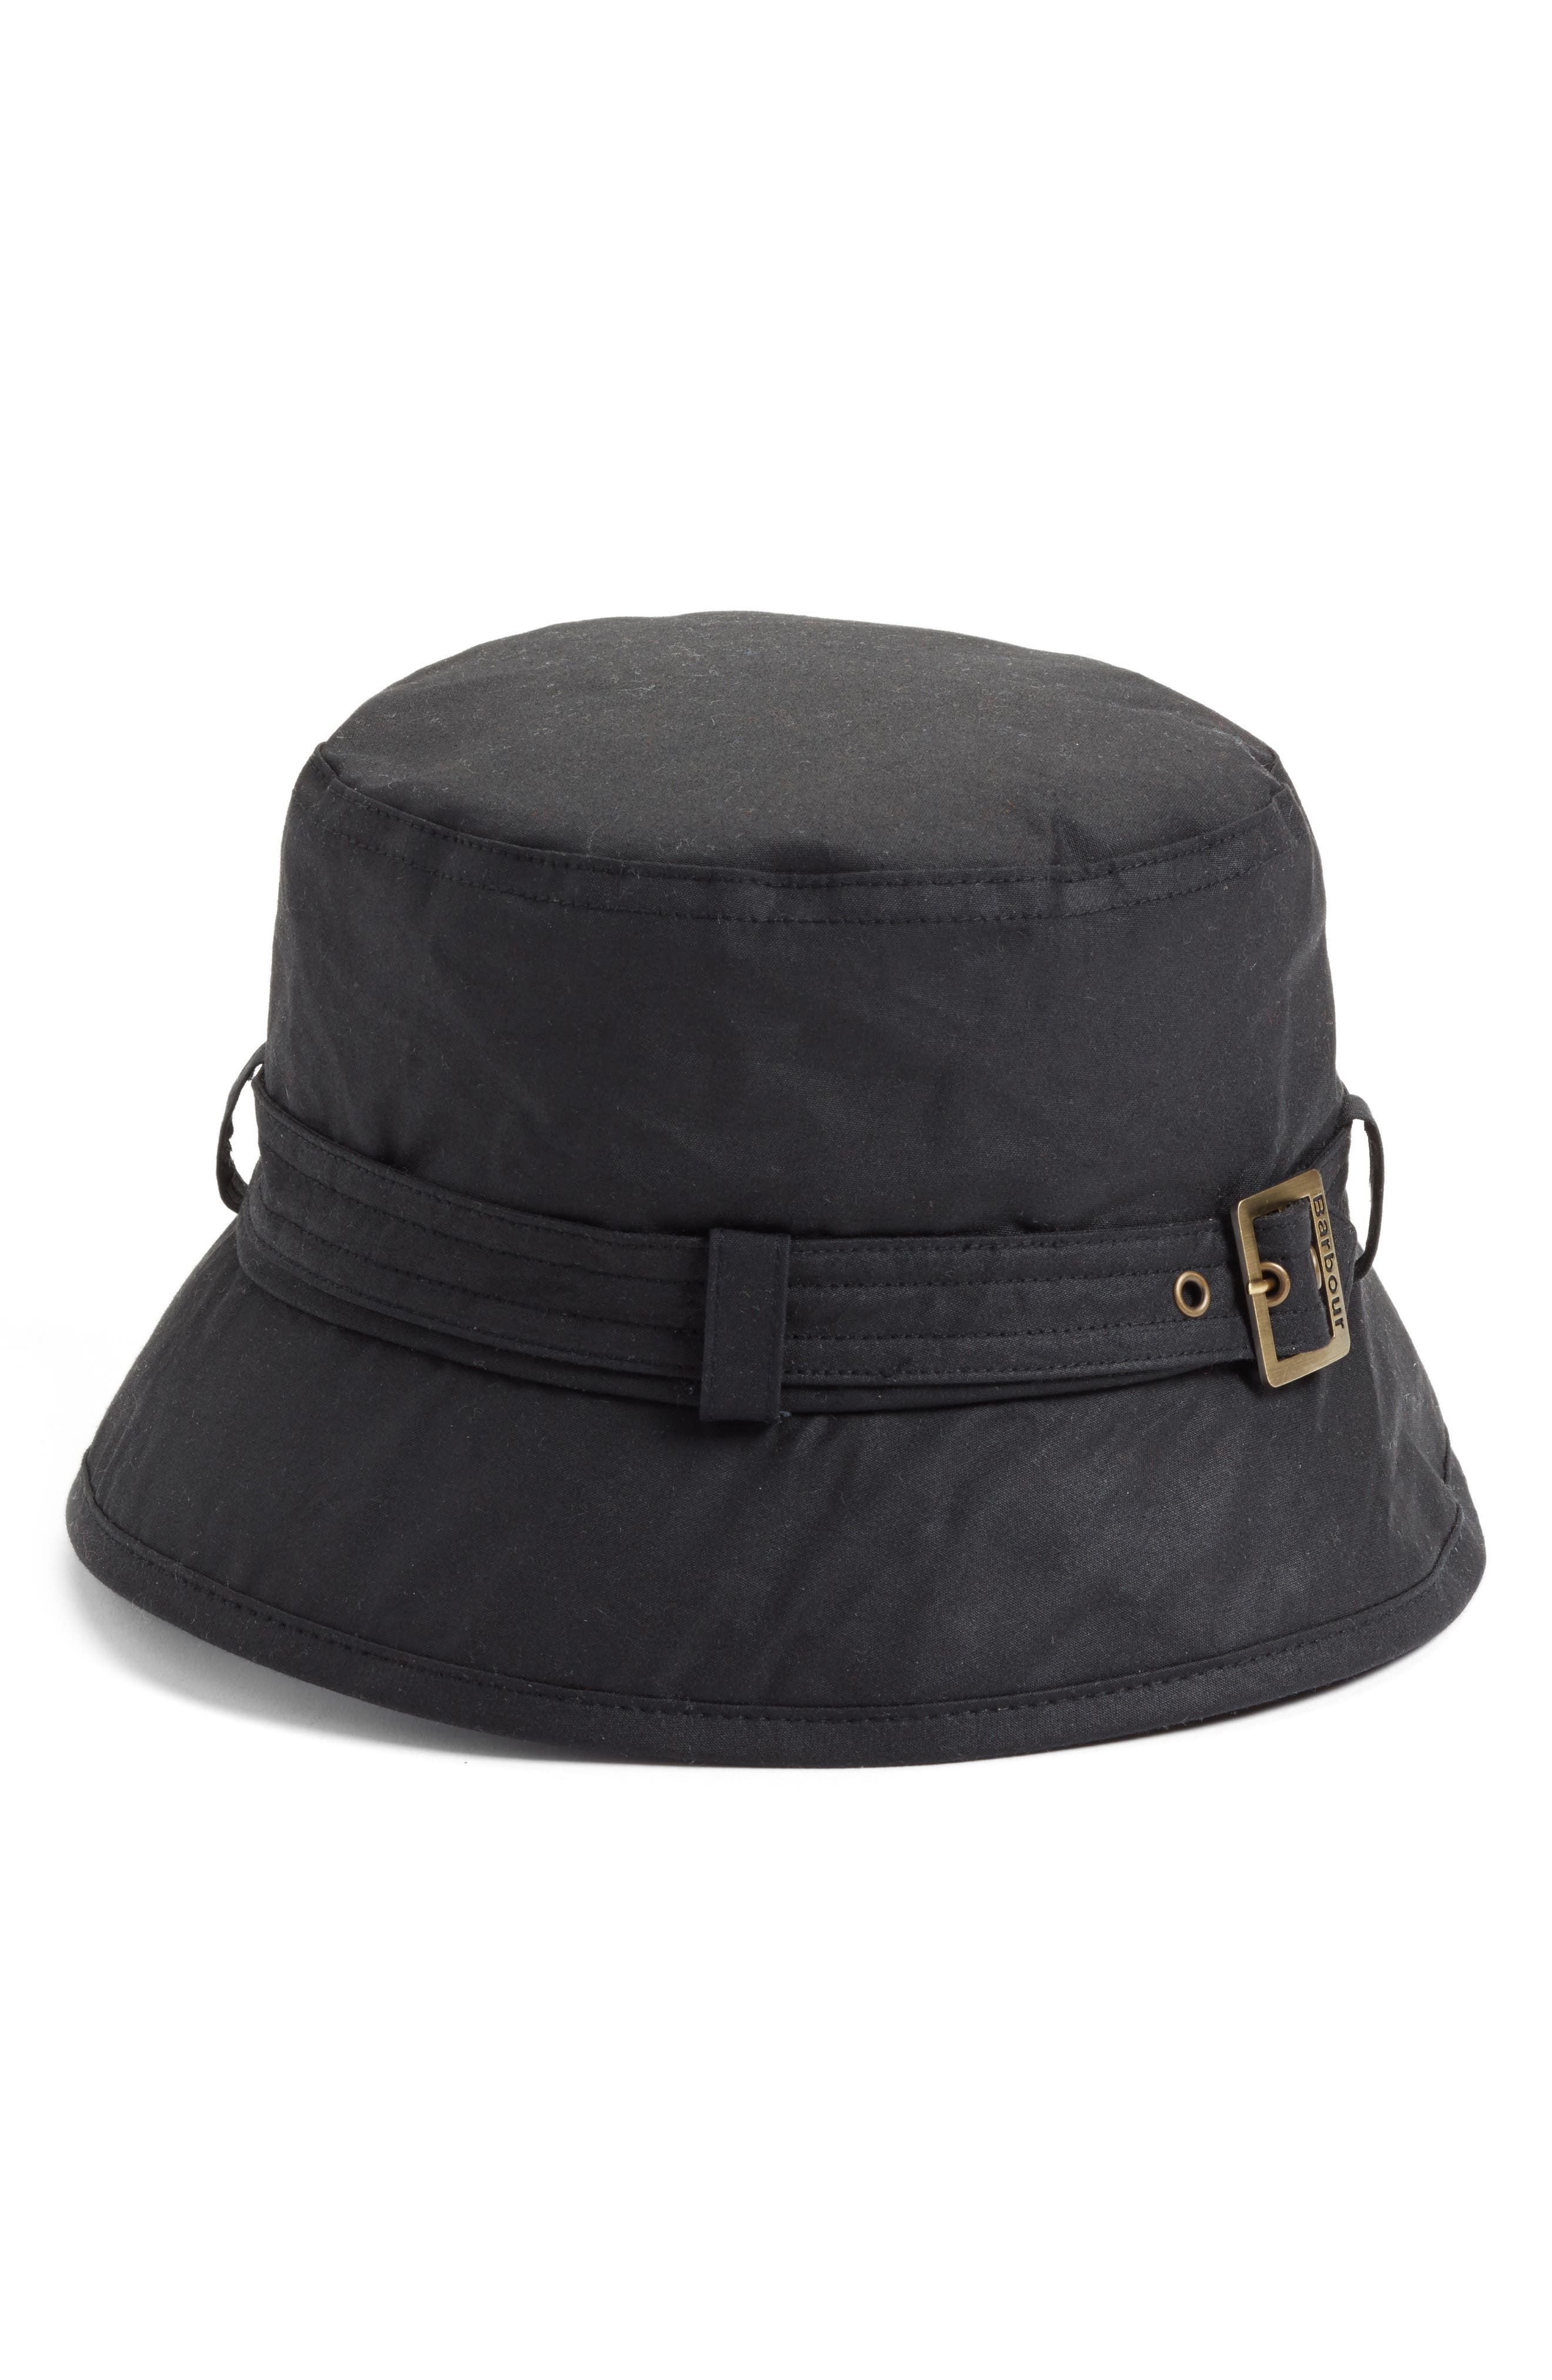 Kelso Bucket Hat,                         Main,                         color, 001